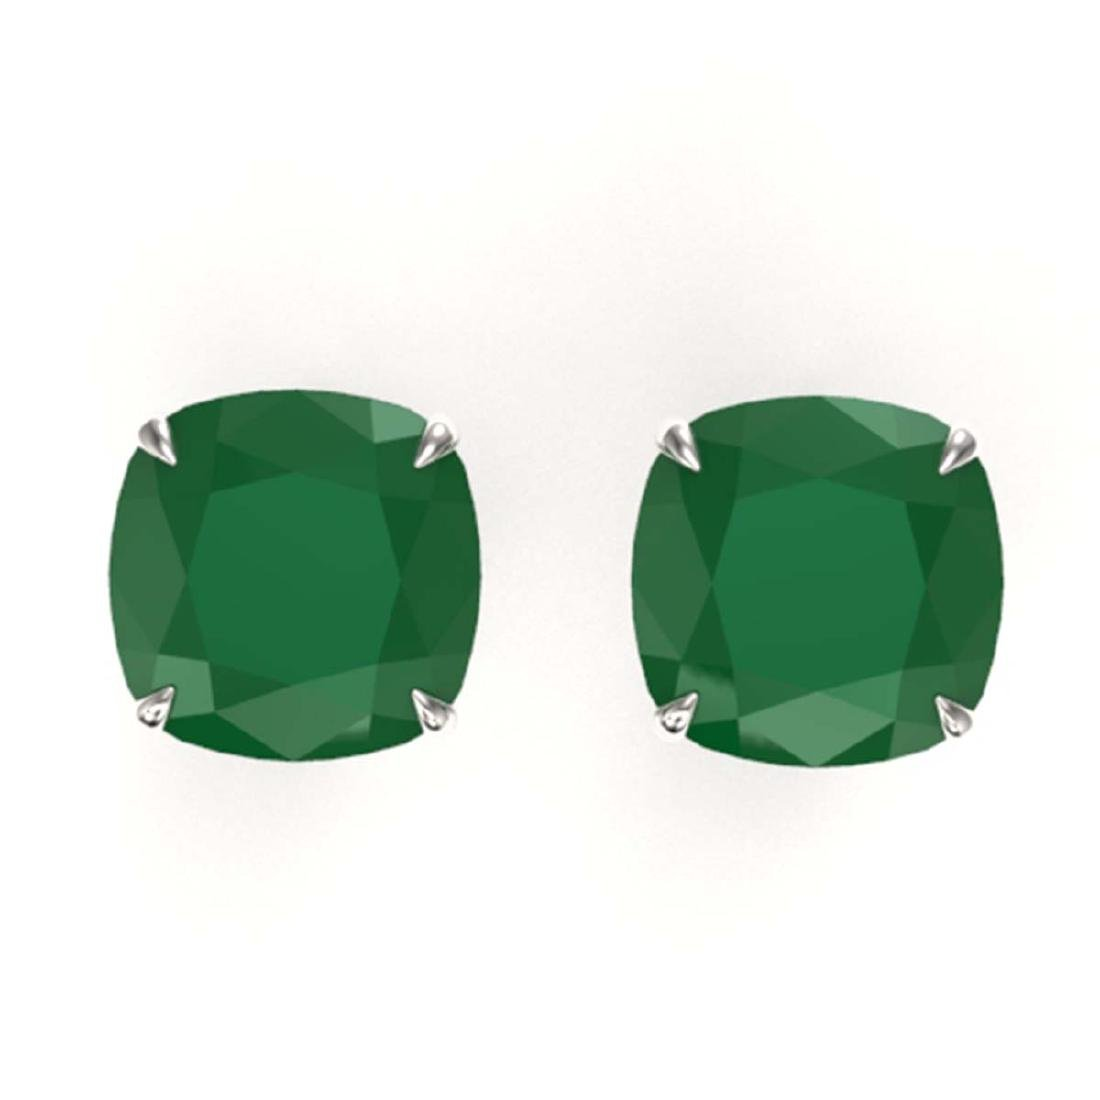 12 CTW Cushion Cut Emerald Solitaire Stud Earrings 18K